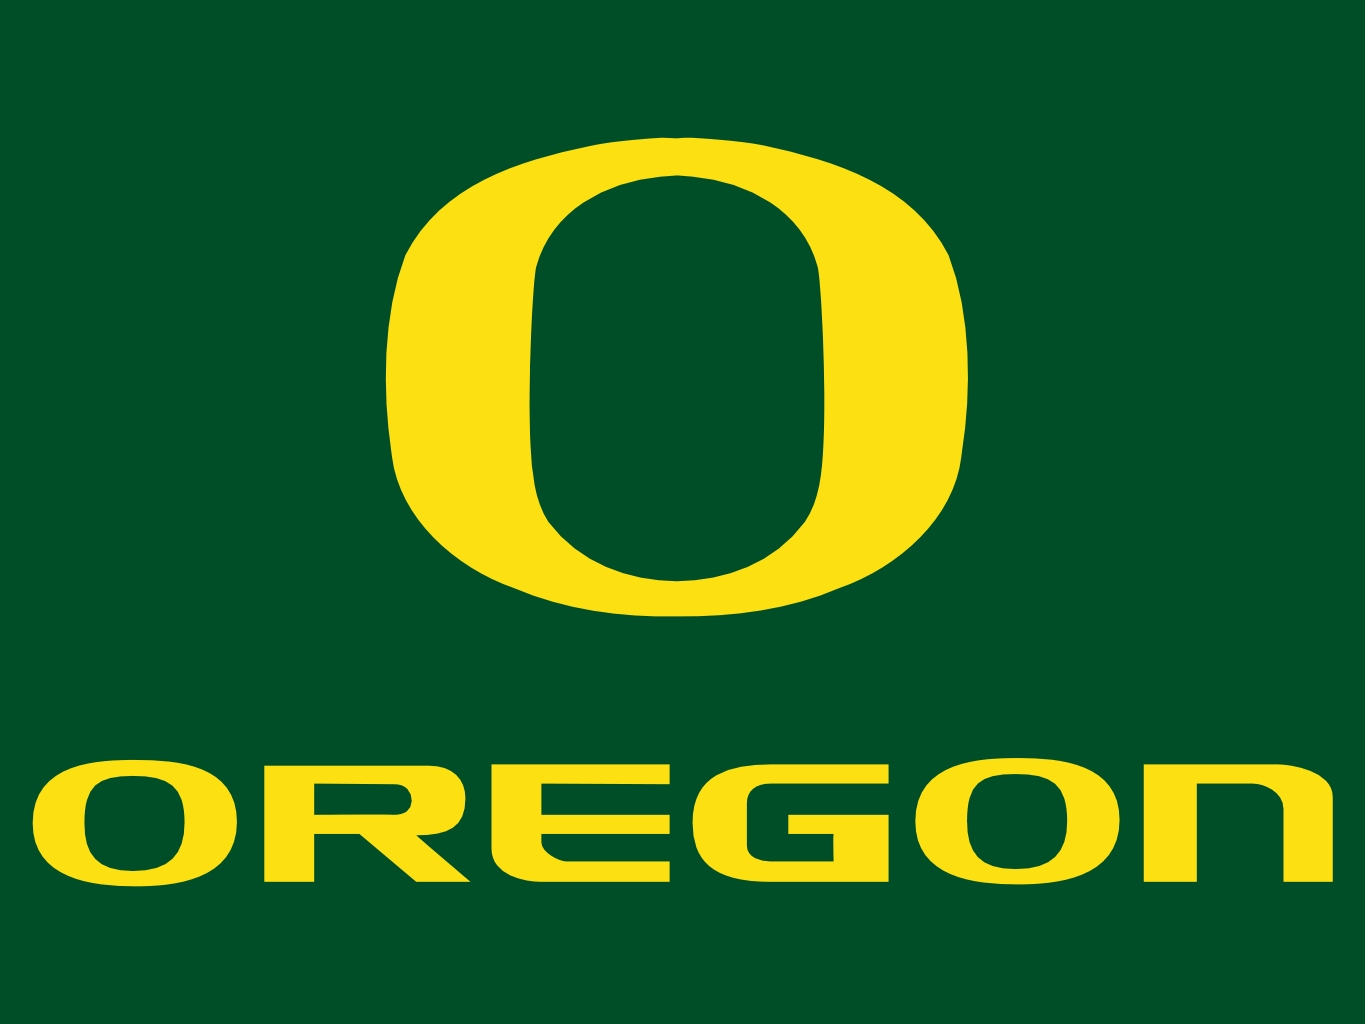 OREGON DUCKS 2011 PAC-12 preview: A Third Straight Conference ...